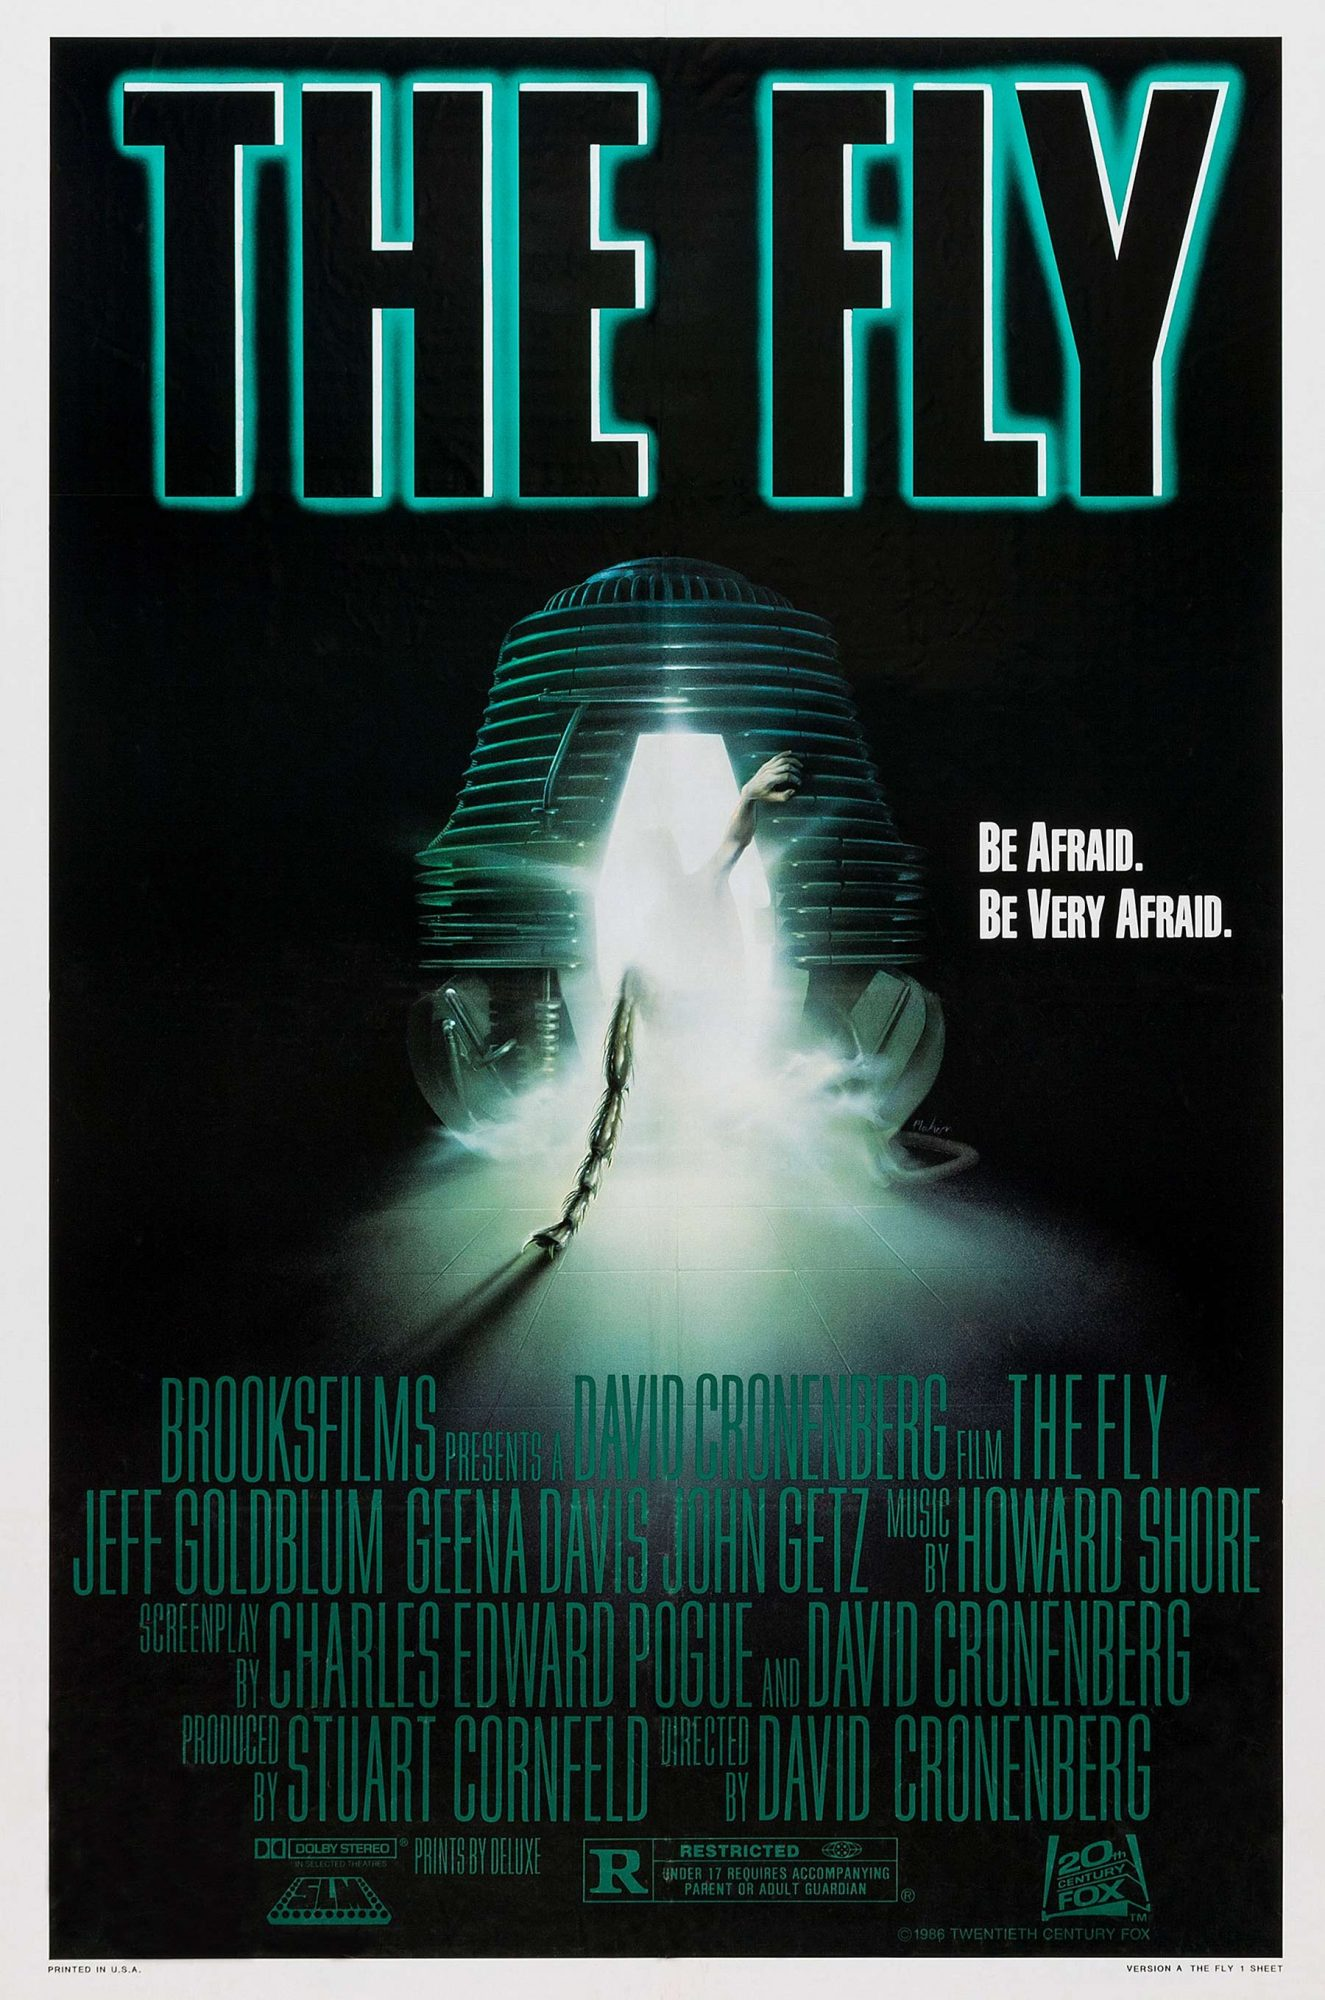 THE FLY, US poster art, 1986. TM and Copyright 20th Century Fox Film Corp. All rights reserved/court